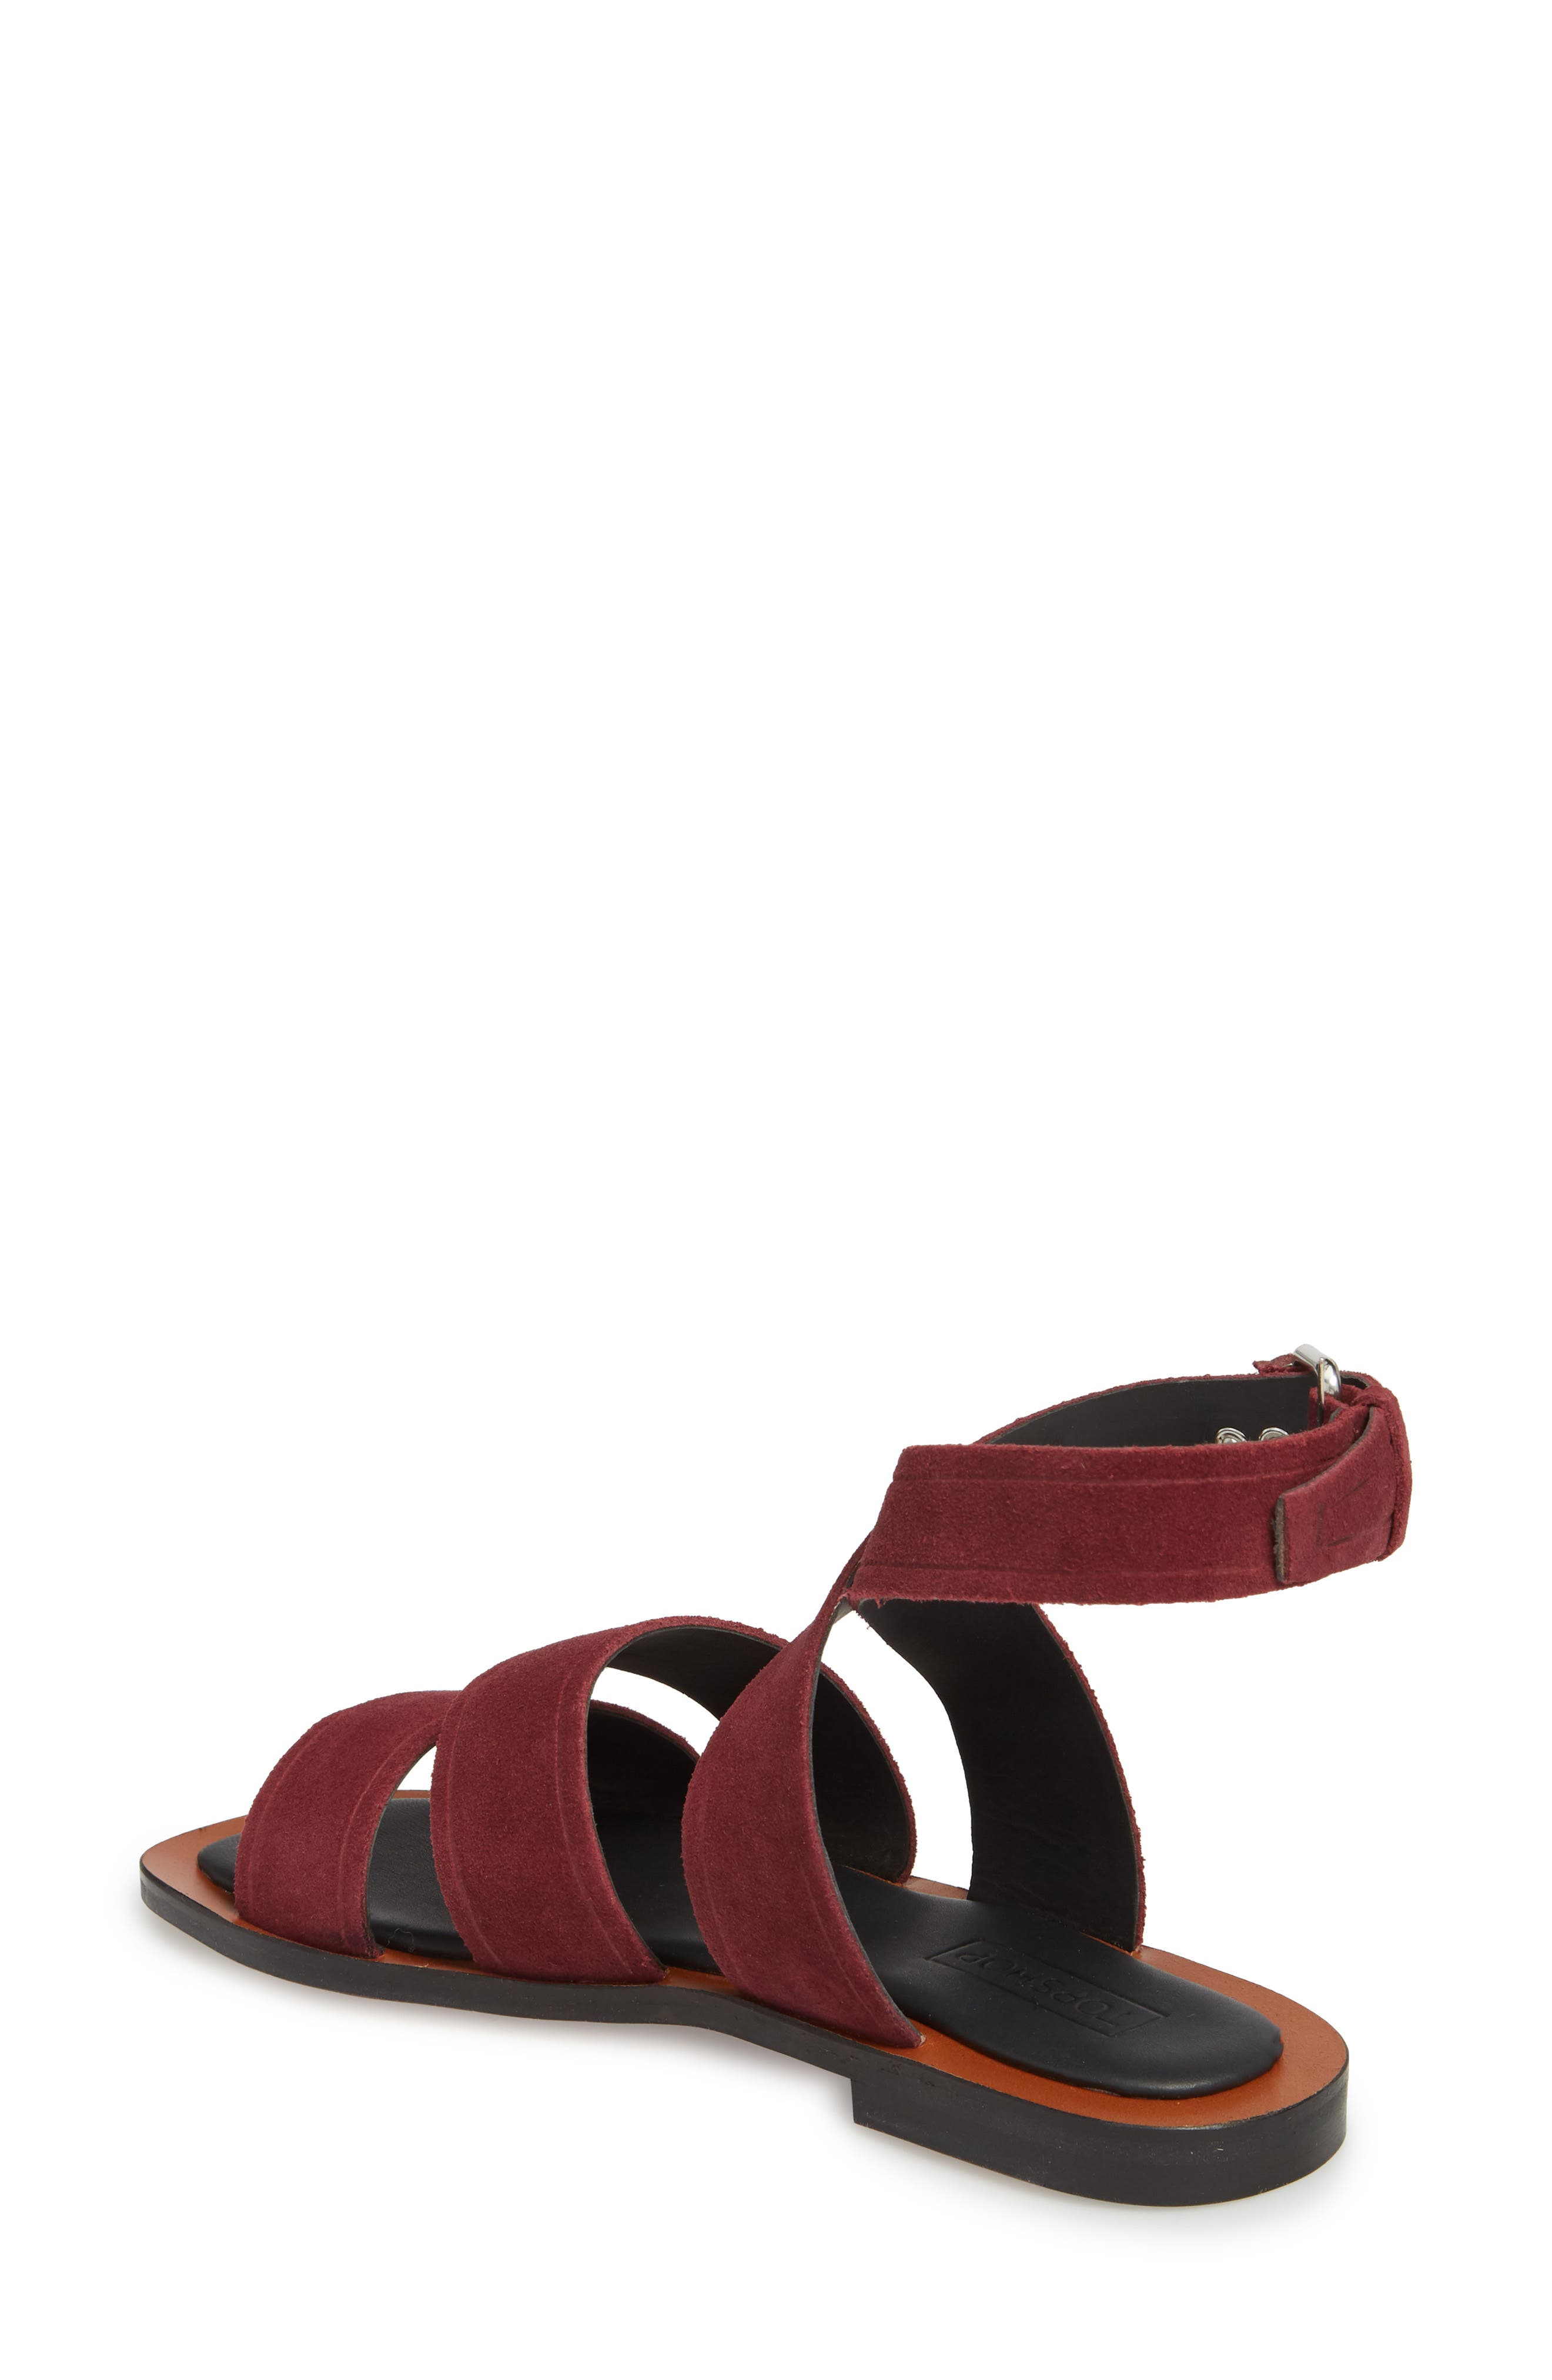 Fume Strappy Sandal,                             Alternate thumbnail 2, color,                             Burgundy Multi